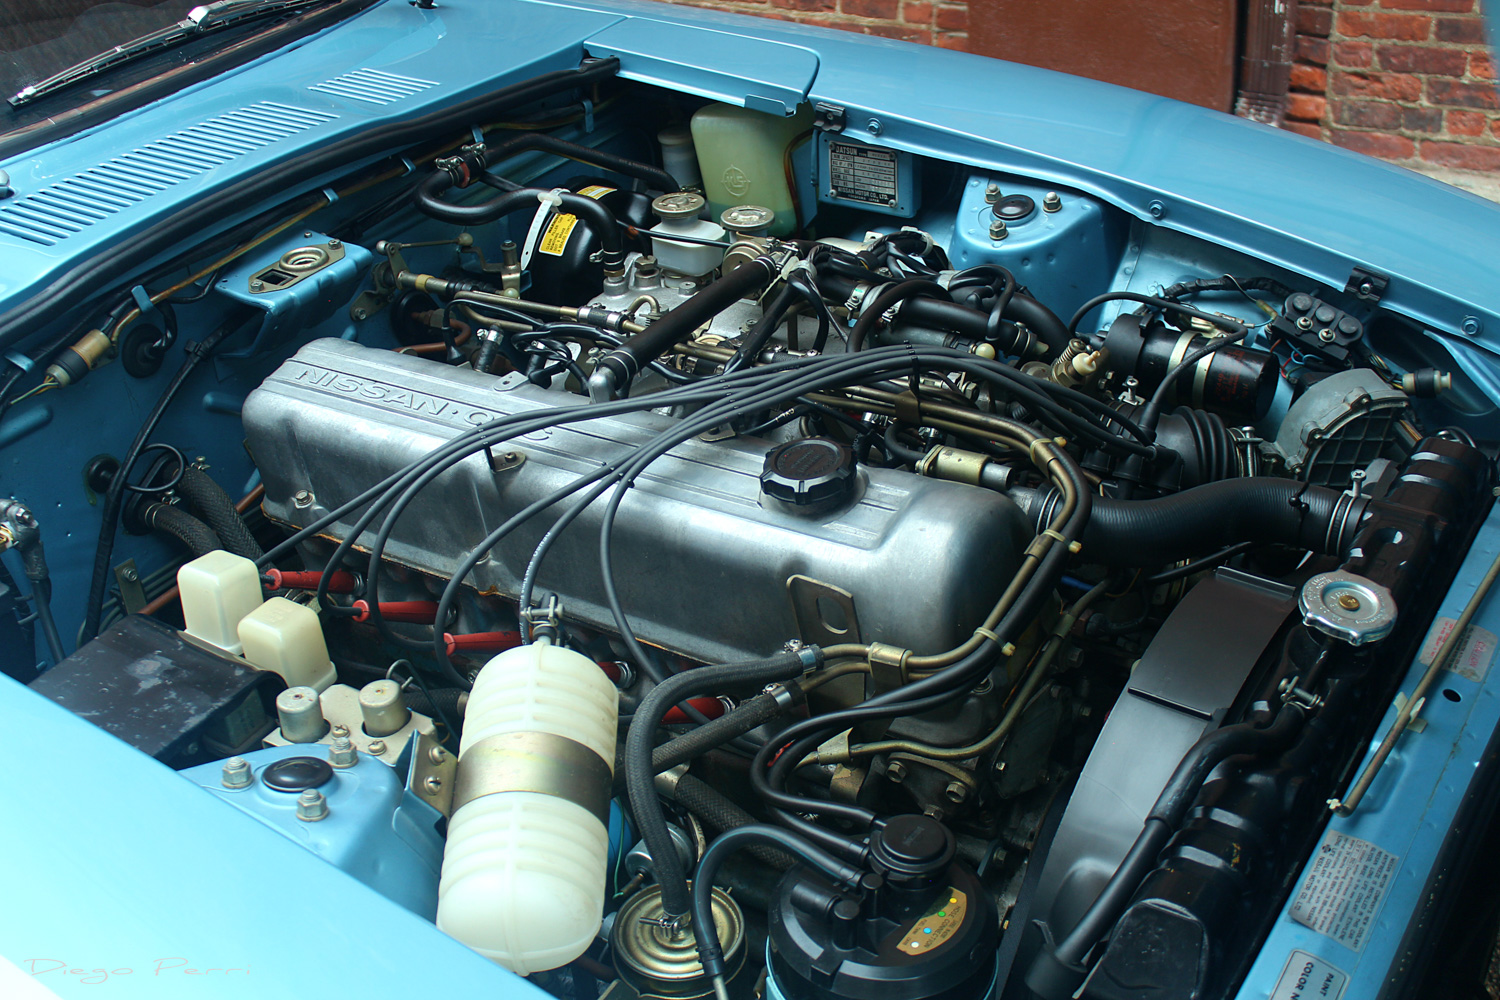 1976 Datsun 280Z engine